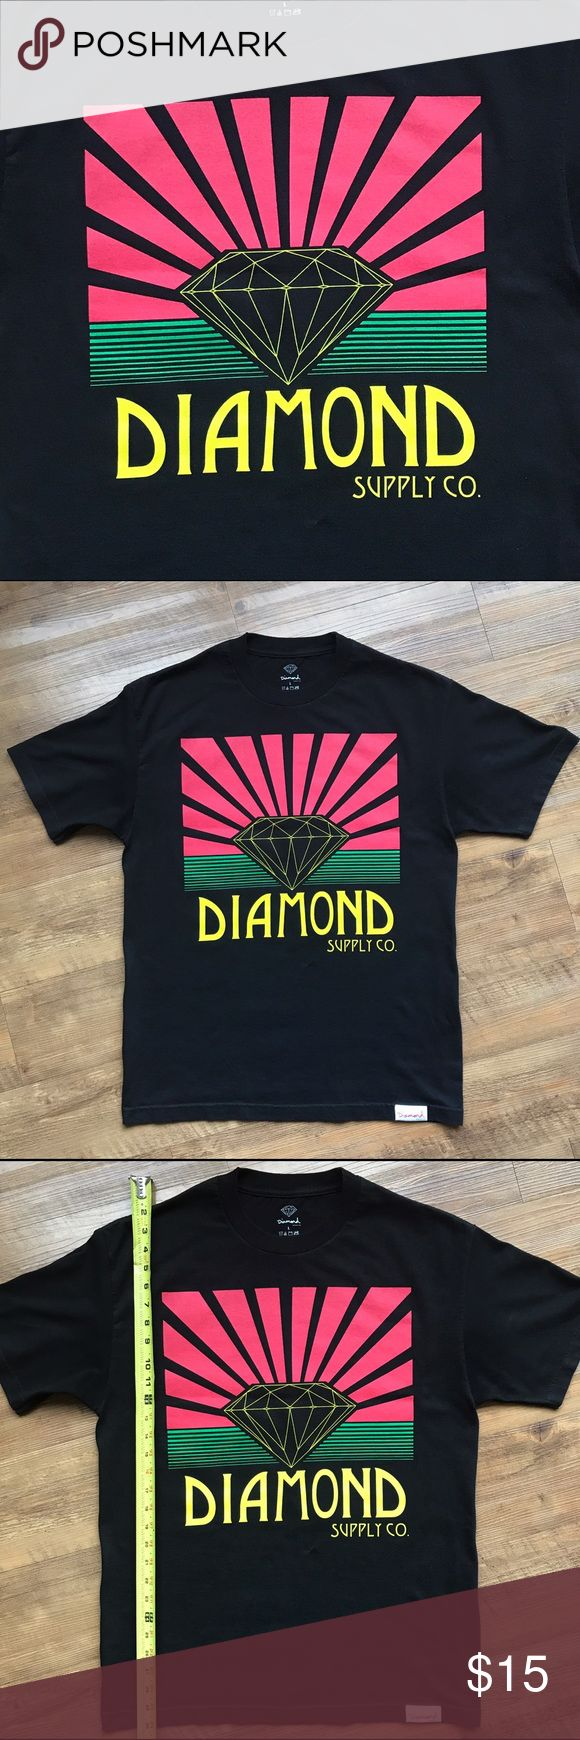 "Diamond Supply Co. - Oversized Logo Tee Shirt BLACK Diamond Supply T-Shirt - RED/YLW/GRN ""Rising Sun"" Logo - Size: Large - GENTLY USED, EXCELLENT CONDITION Diamond Supply Co. Shirts Tees - Short Sleeve"